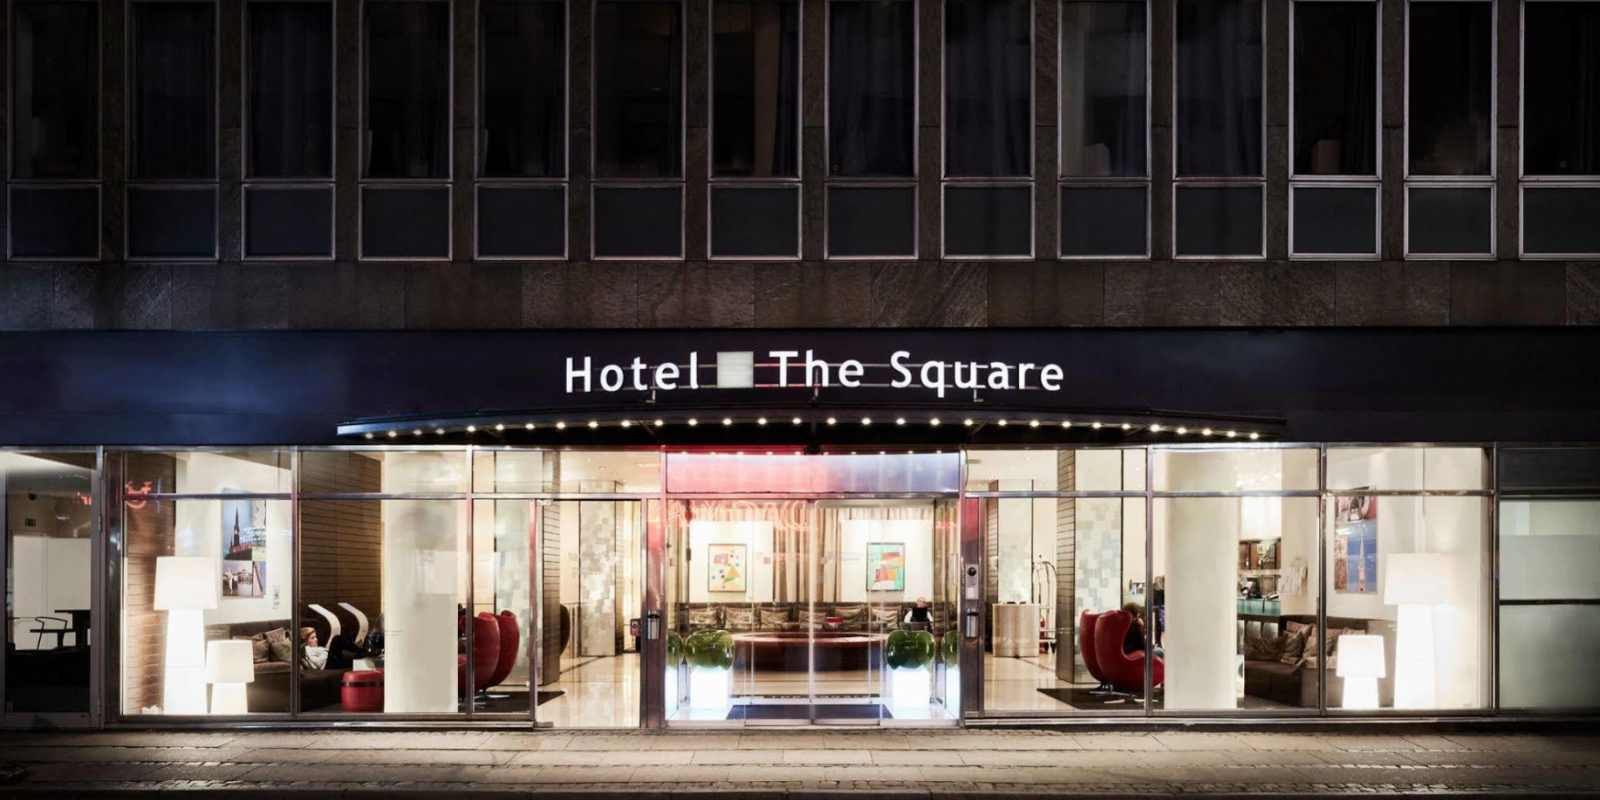 The Square Hotel facade